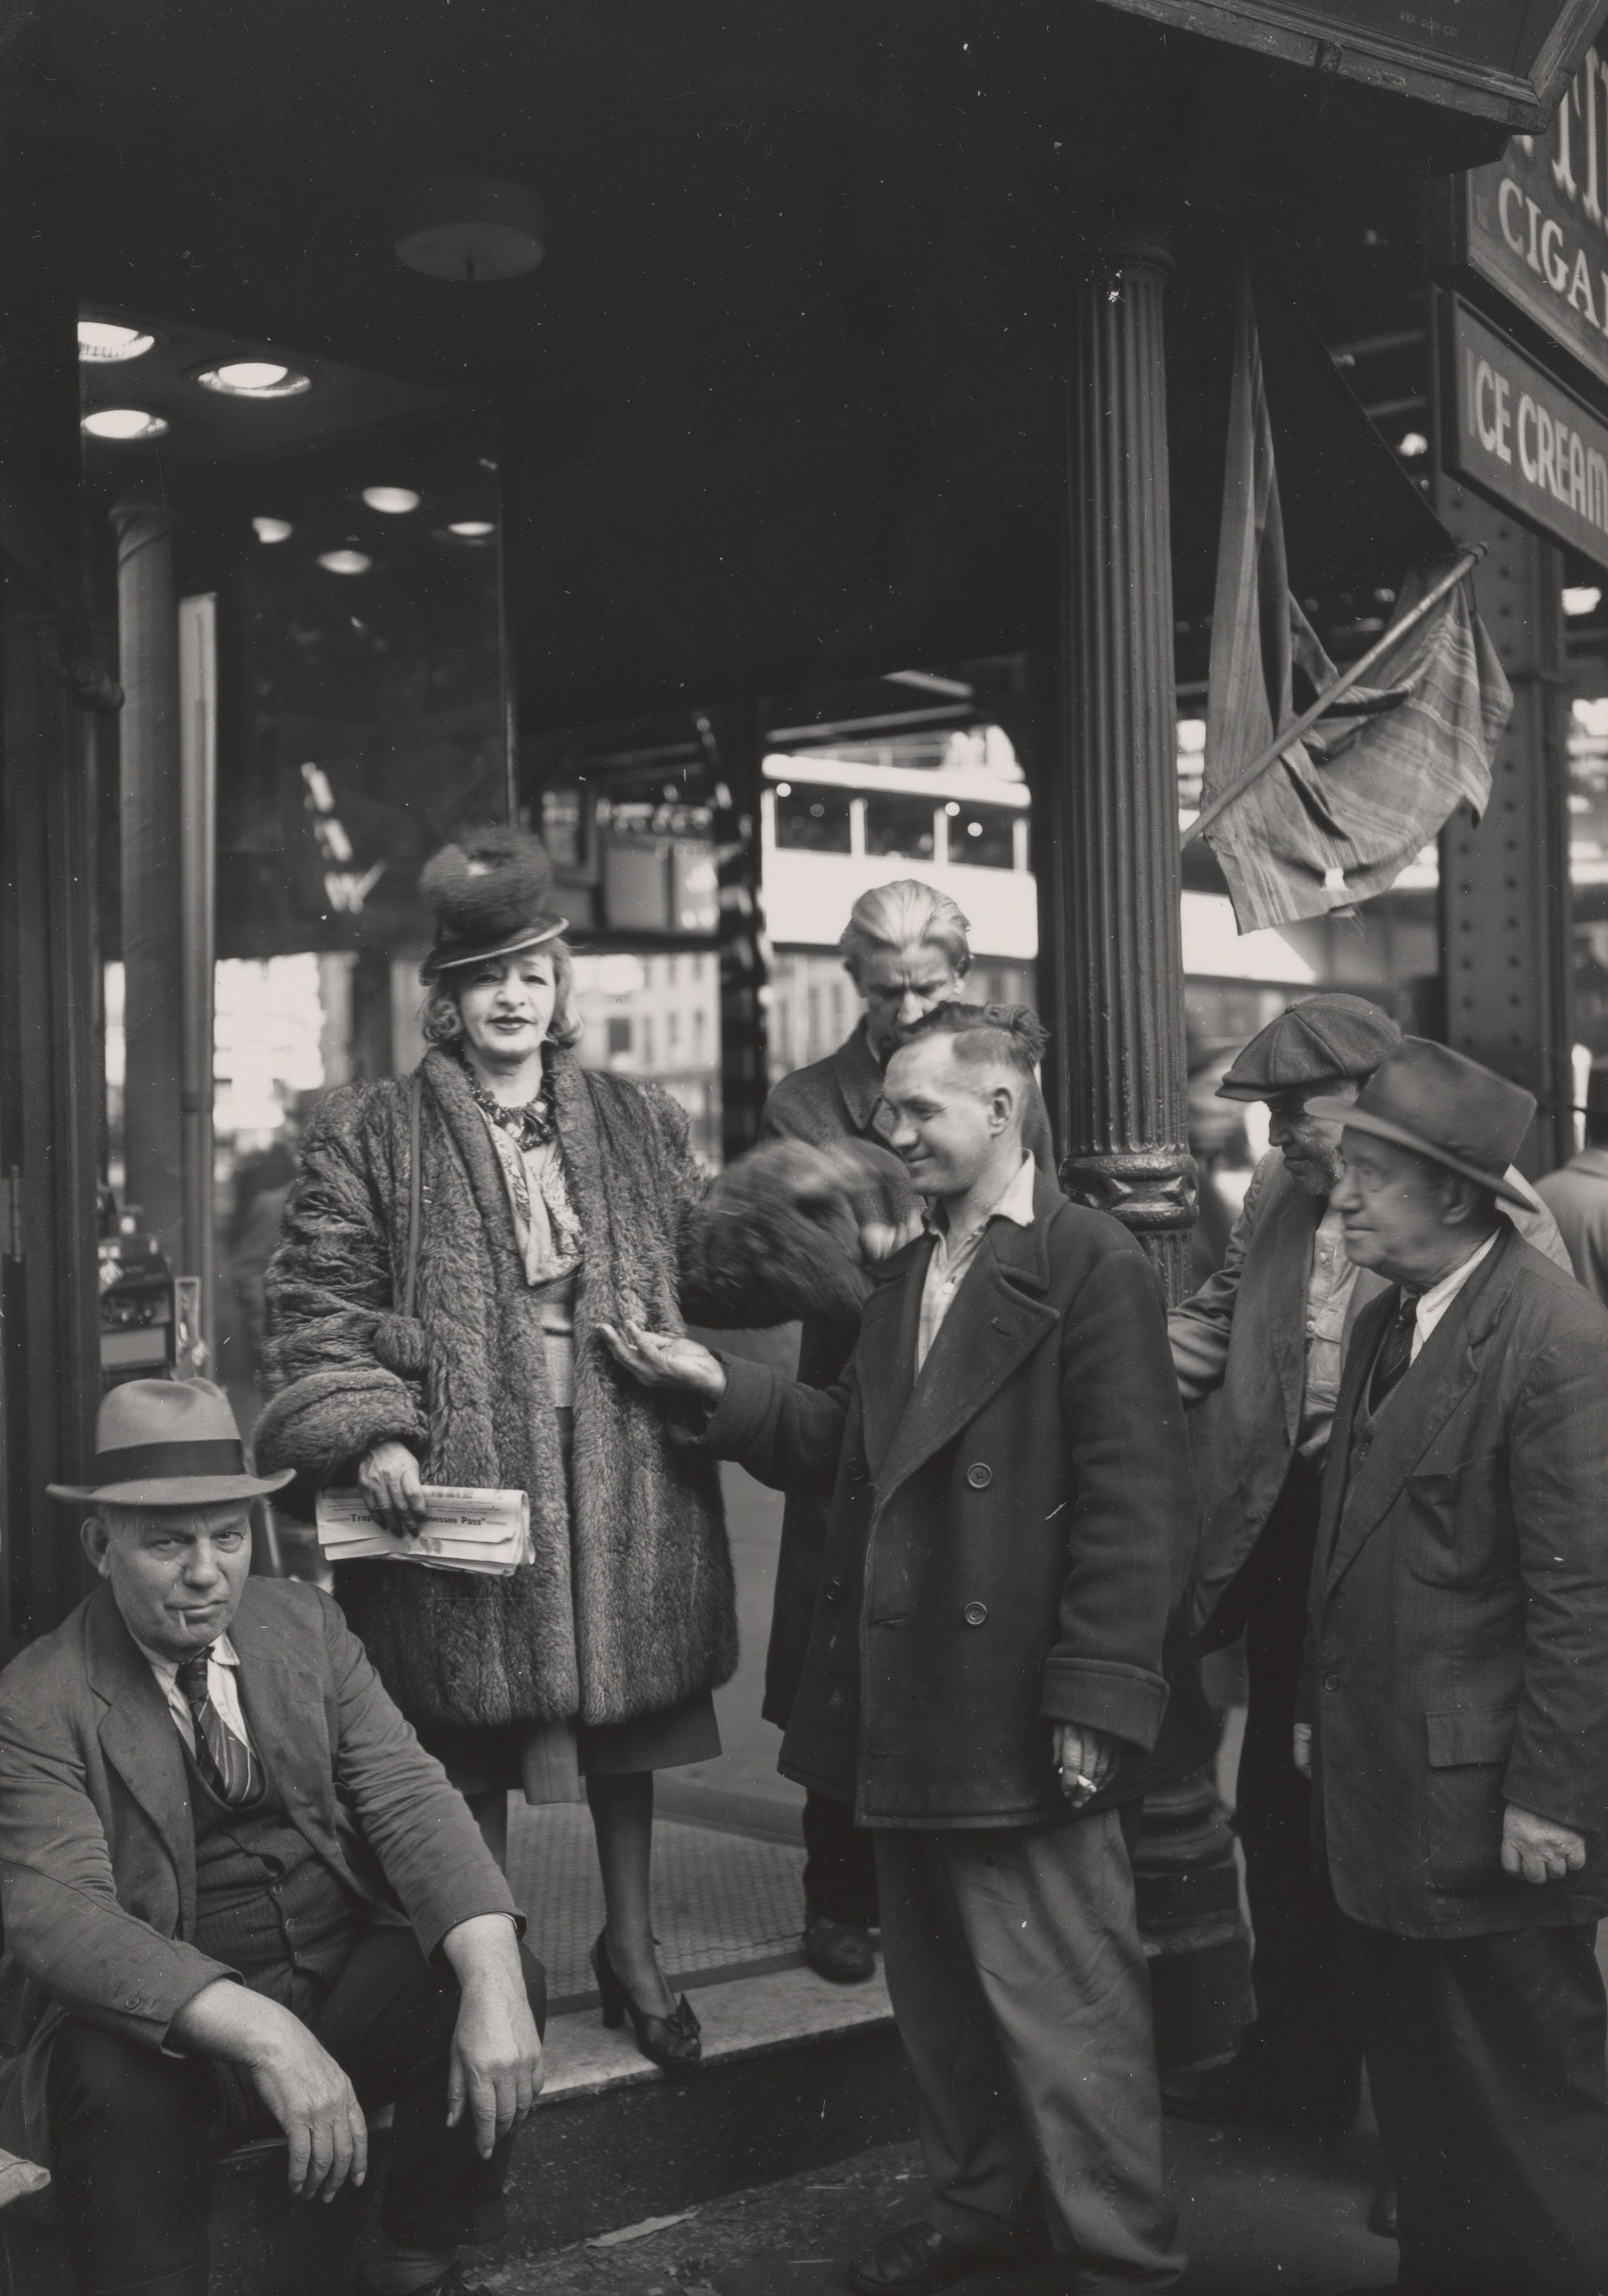 Mazie, Queen of the Bowery, New York, 1946